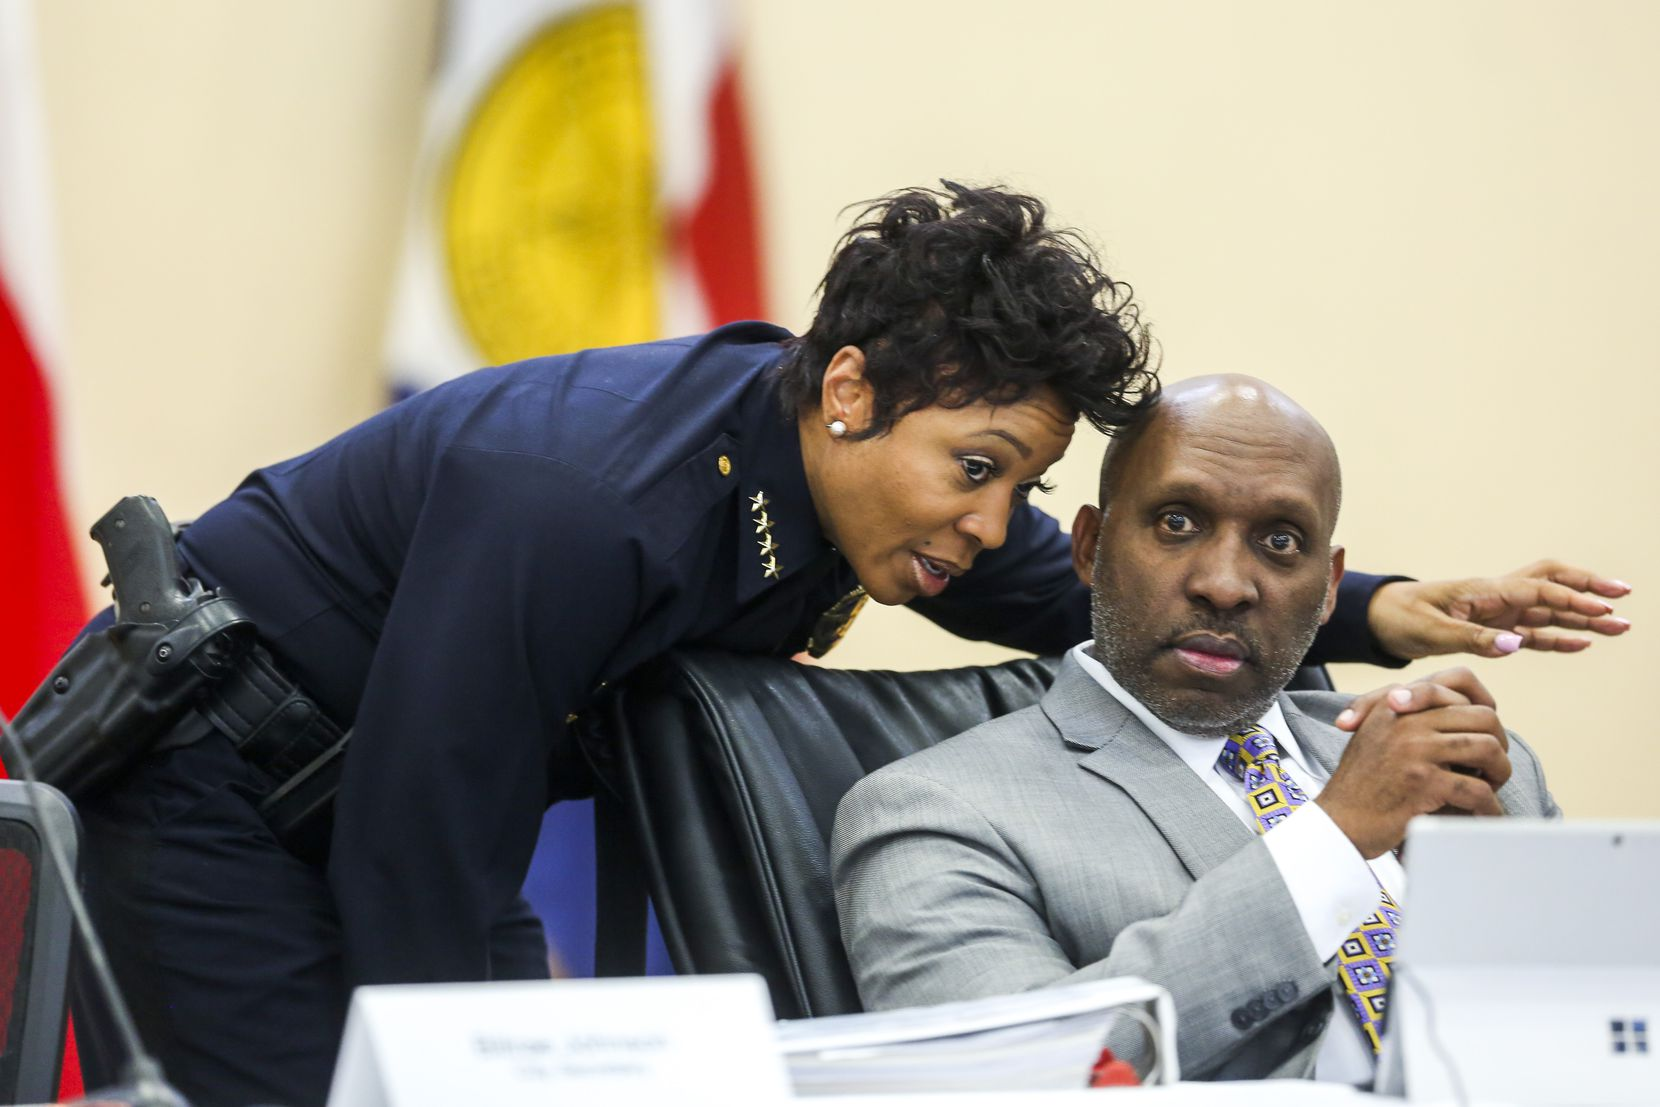 Dallas Police Chief U. Reneé  Hall talks to her boss, Dallas City Manager T.C. Broadnax, during a City Council meeting in February 2019.  Hall resigned in September and will leave the department at the end of the year.